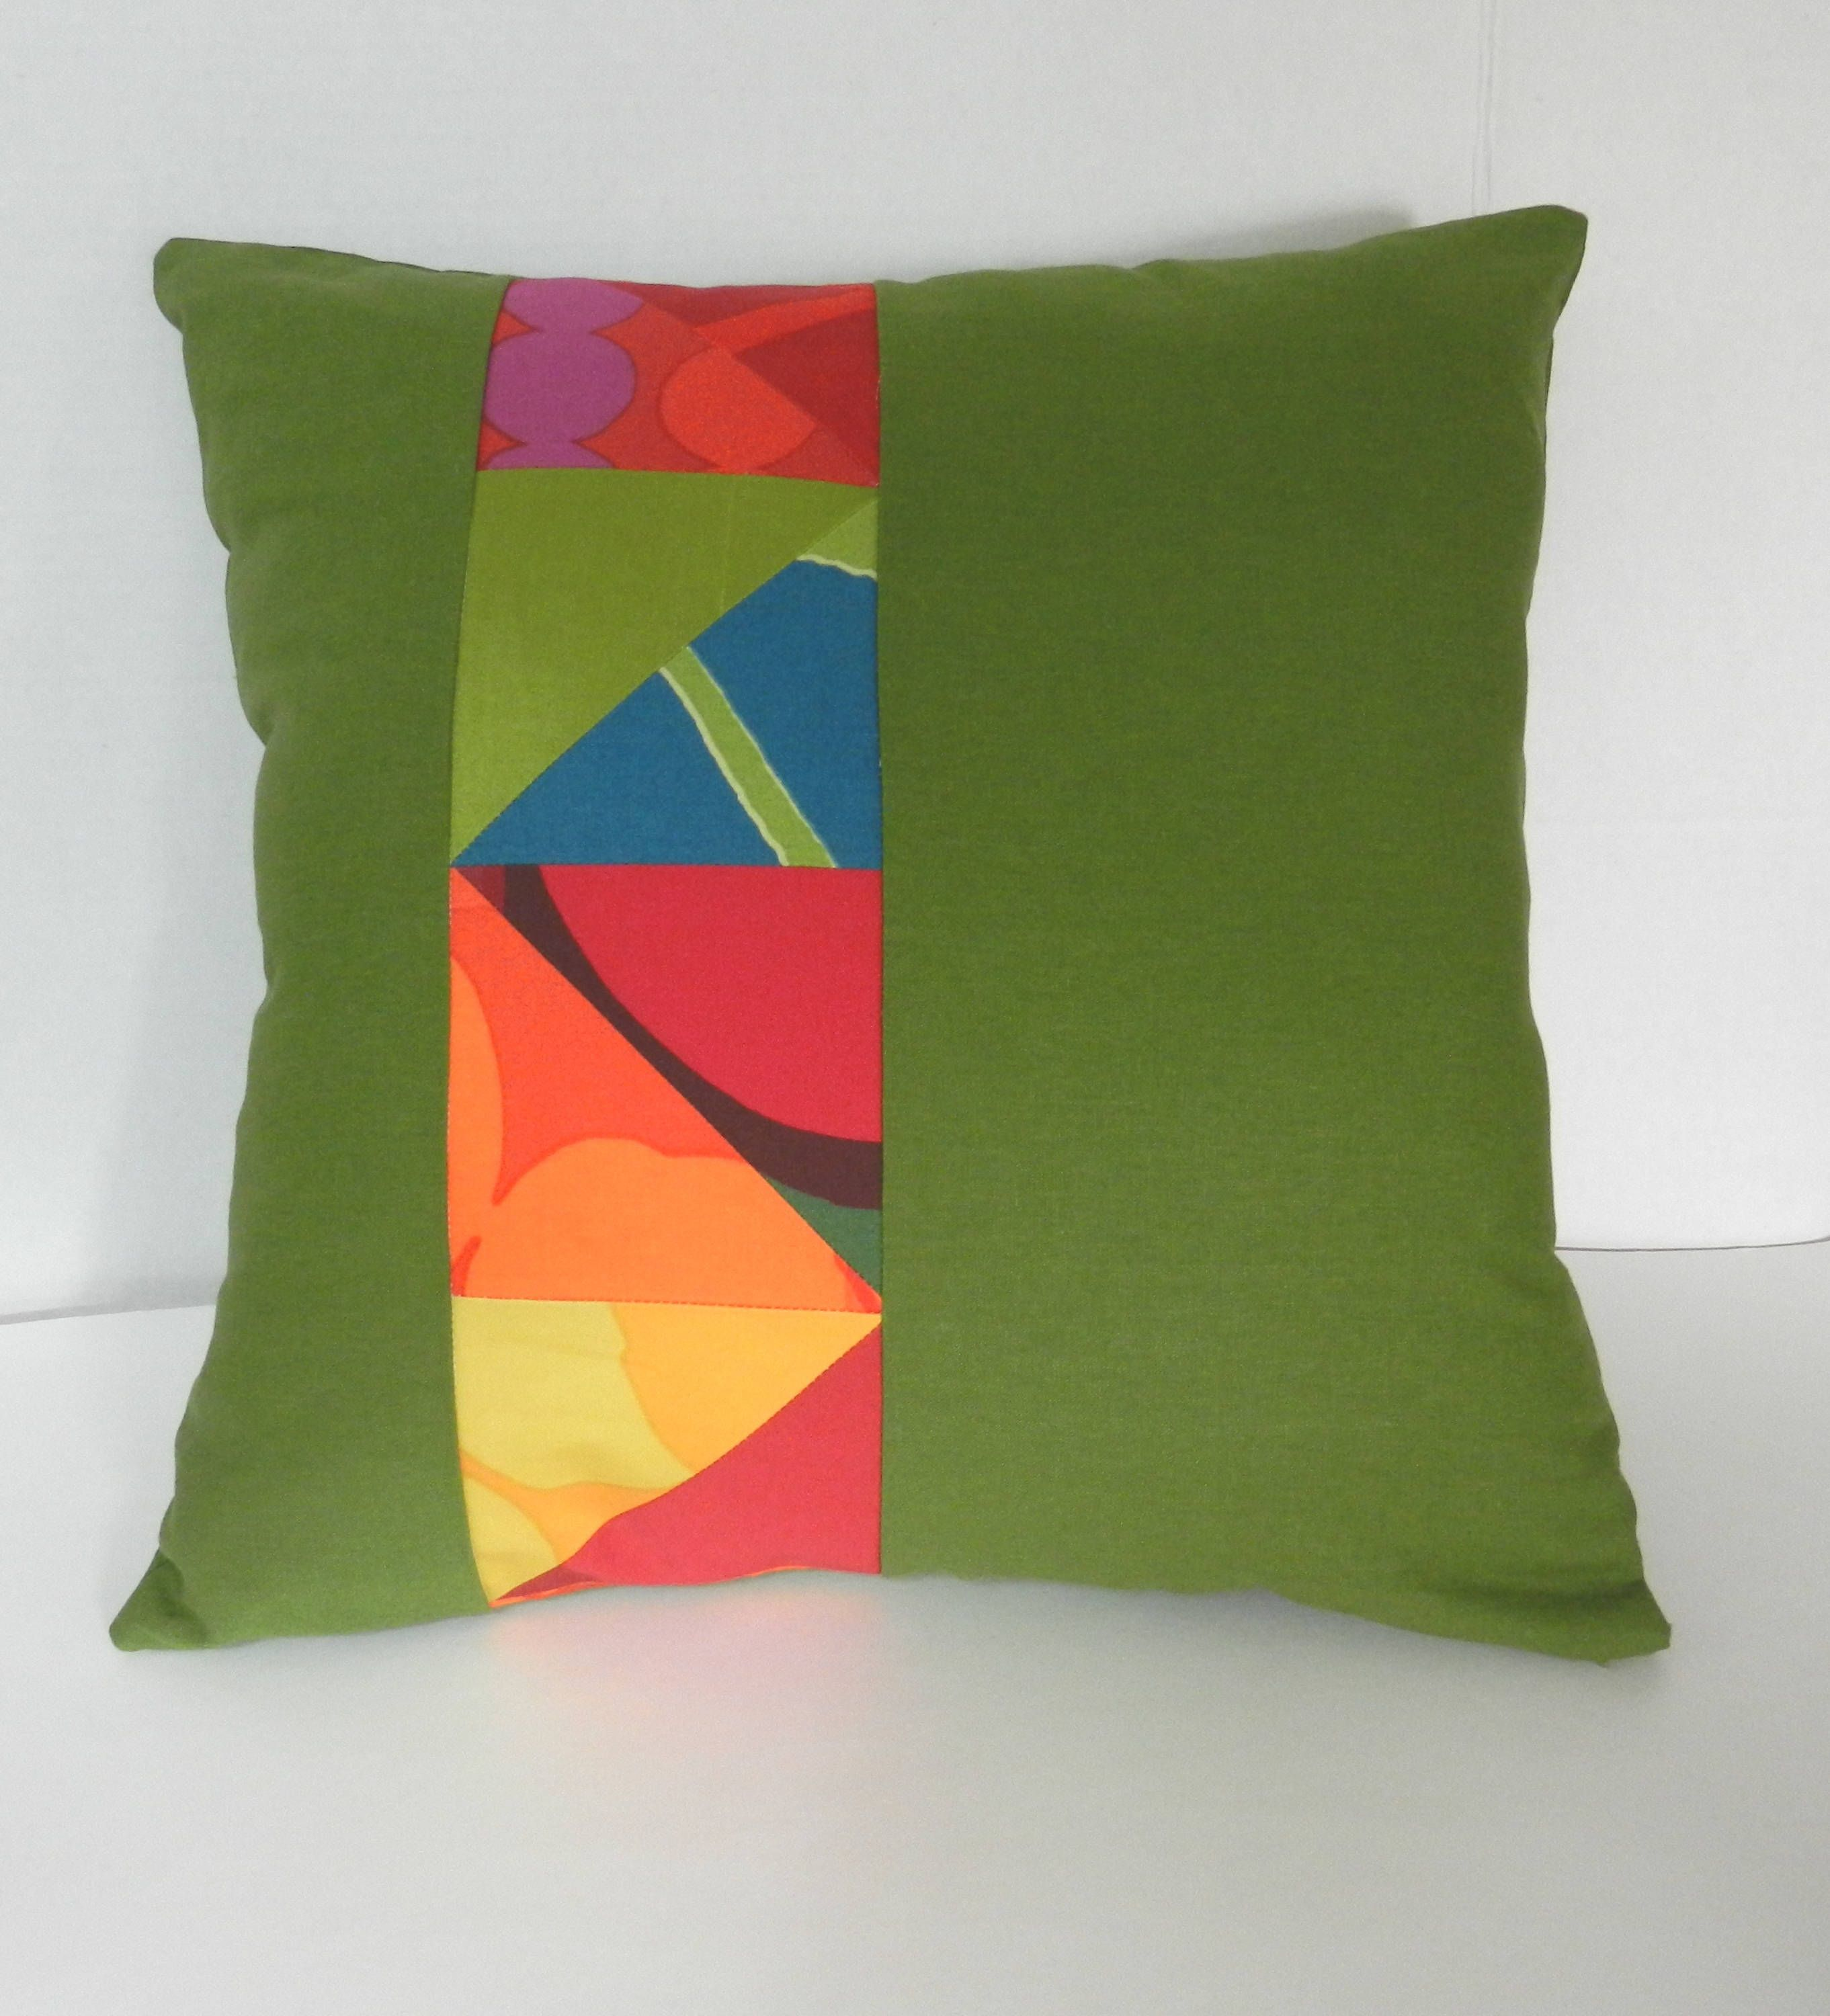 Modern Art Chair Covers And Linens Chairman Meaning In Hindi Marimekko Green Linen Patchwork Pillow Cover Fiber Rainbow Quilt One Of A Kind 18 X Inches For Sofa Or Bed By